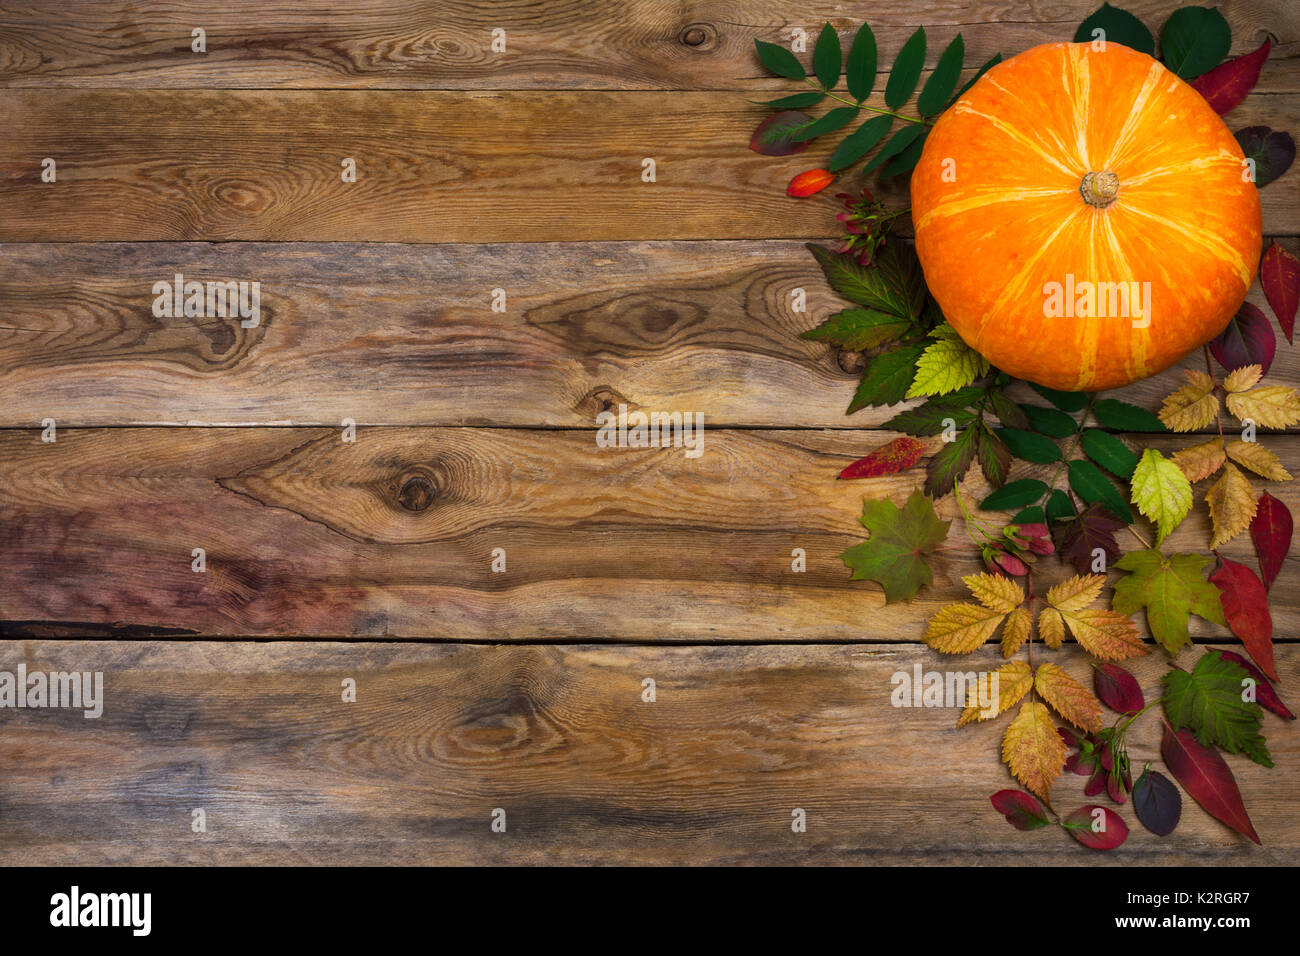 Happy Thanksgiving Background With Pumpkin And Autumn Leaves On The Left Side Of Rustic Wooden Table Fall Decor Seasonal Vegetables Copy Space